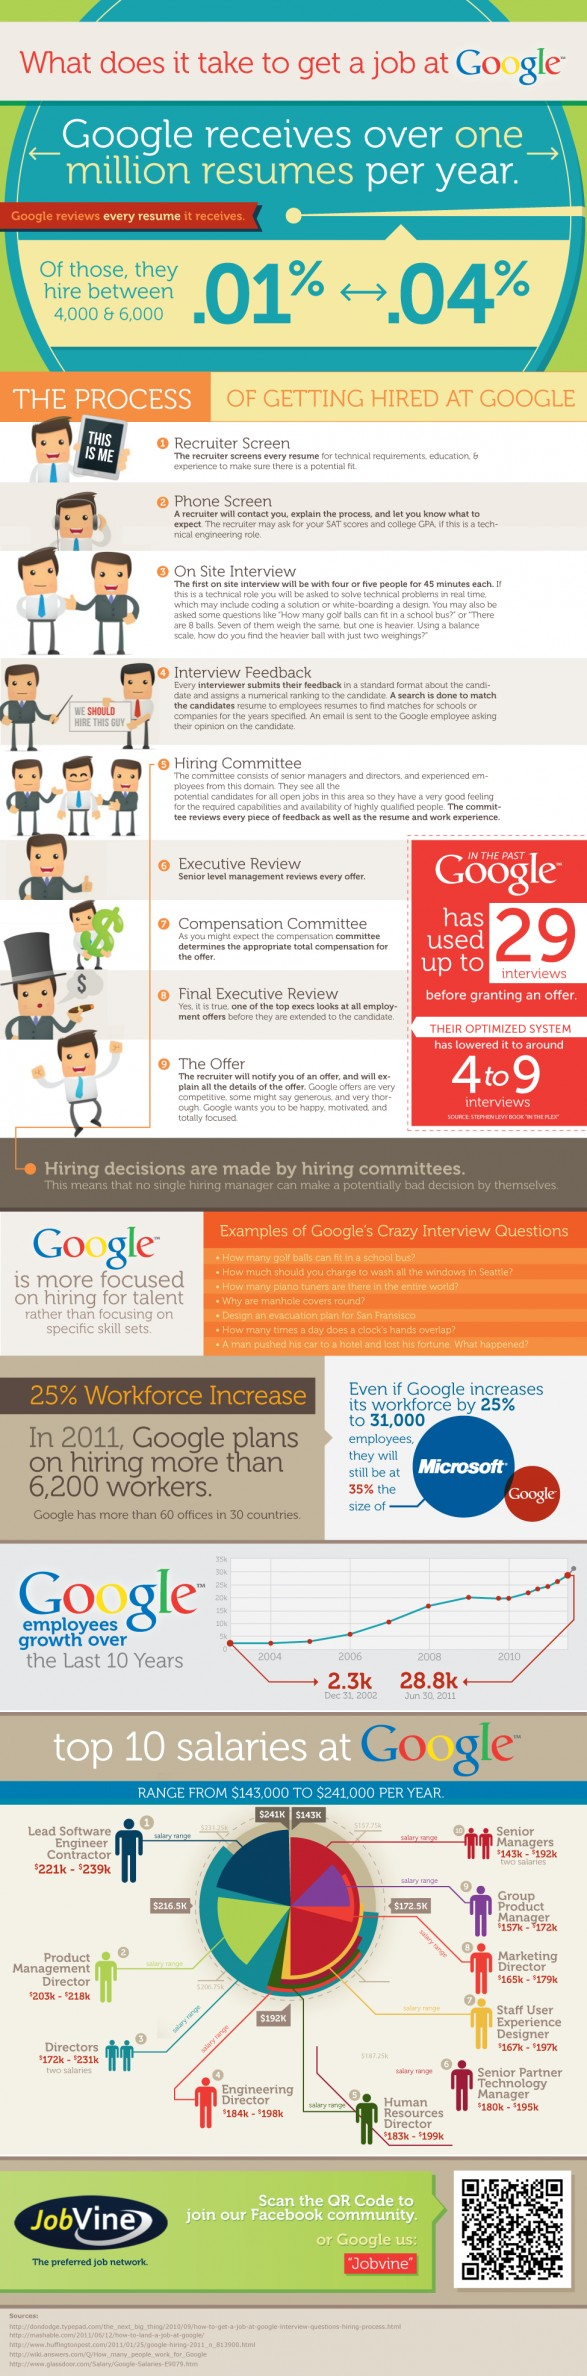 get a gig at google an inside look at the hiring process infographic courtesy of visually